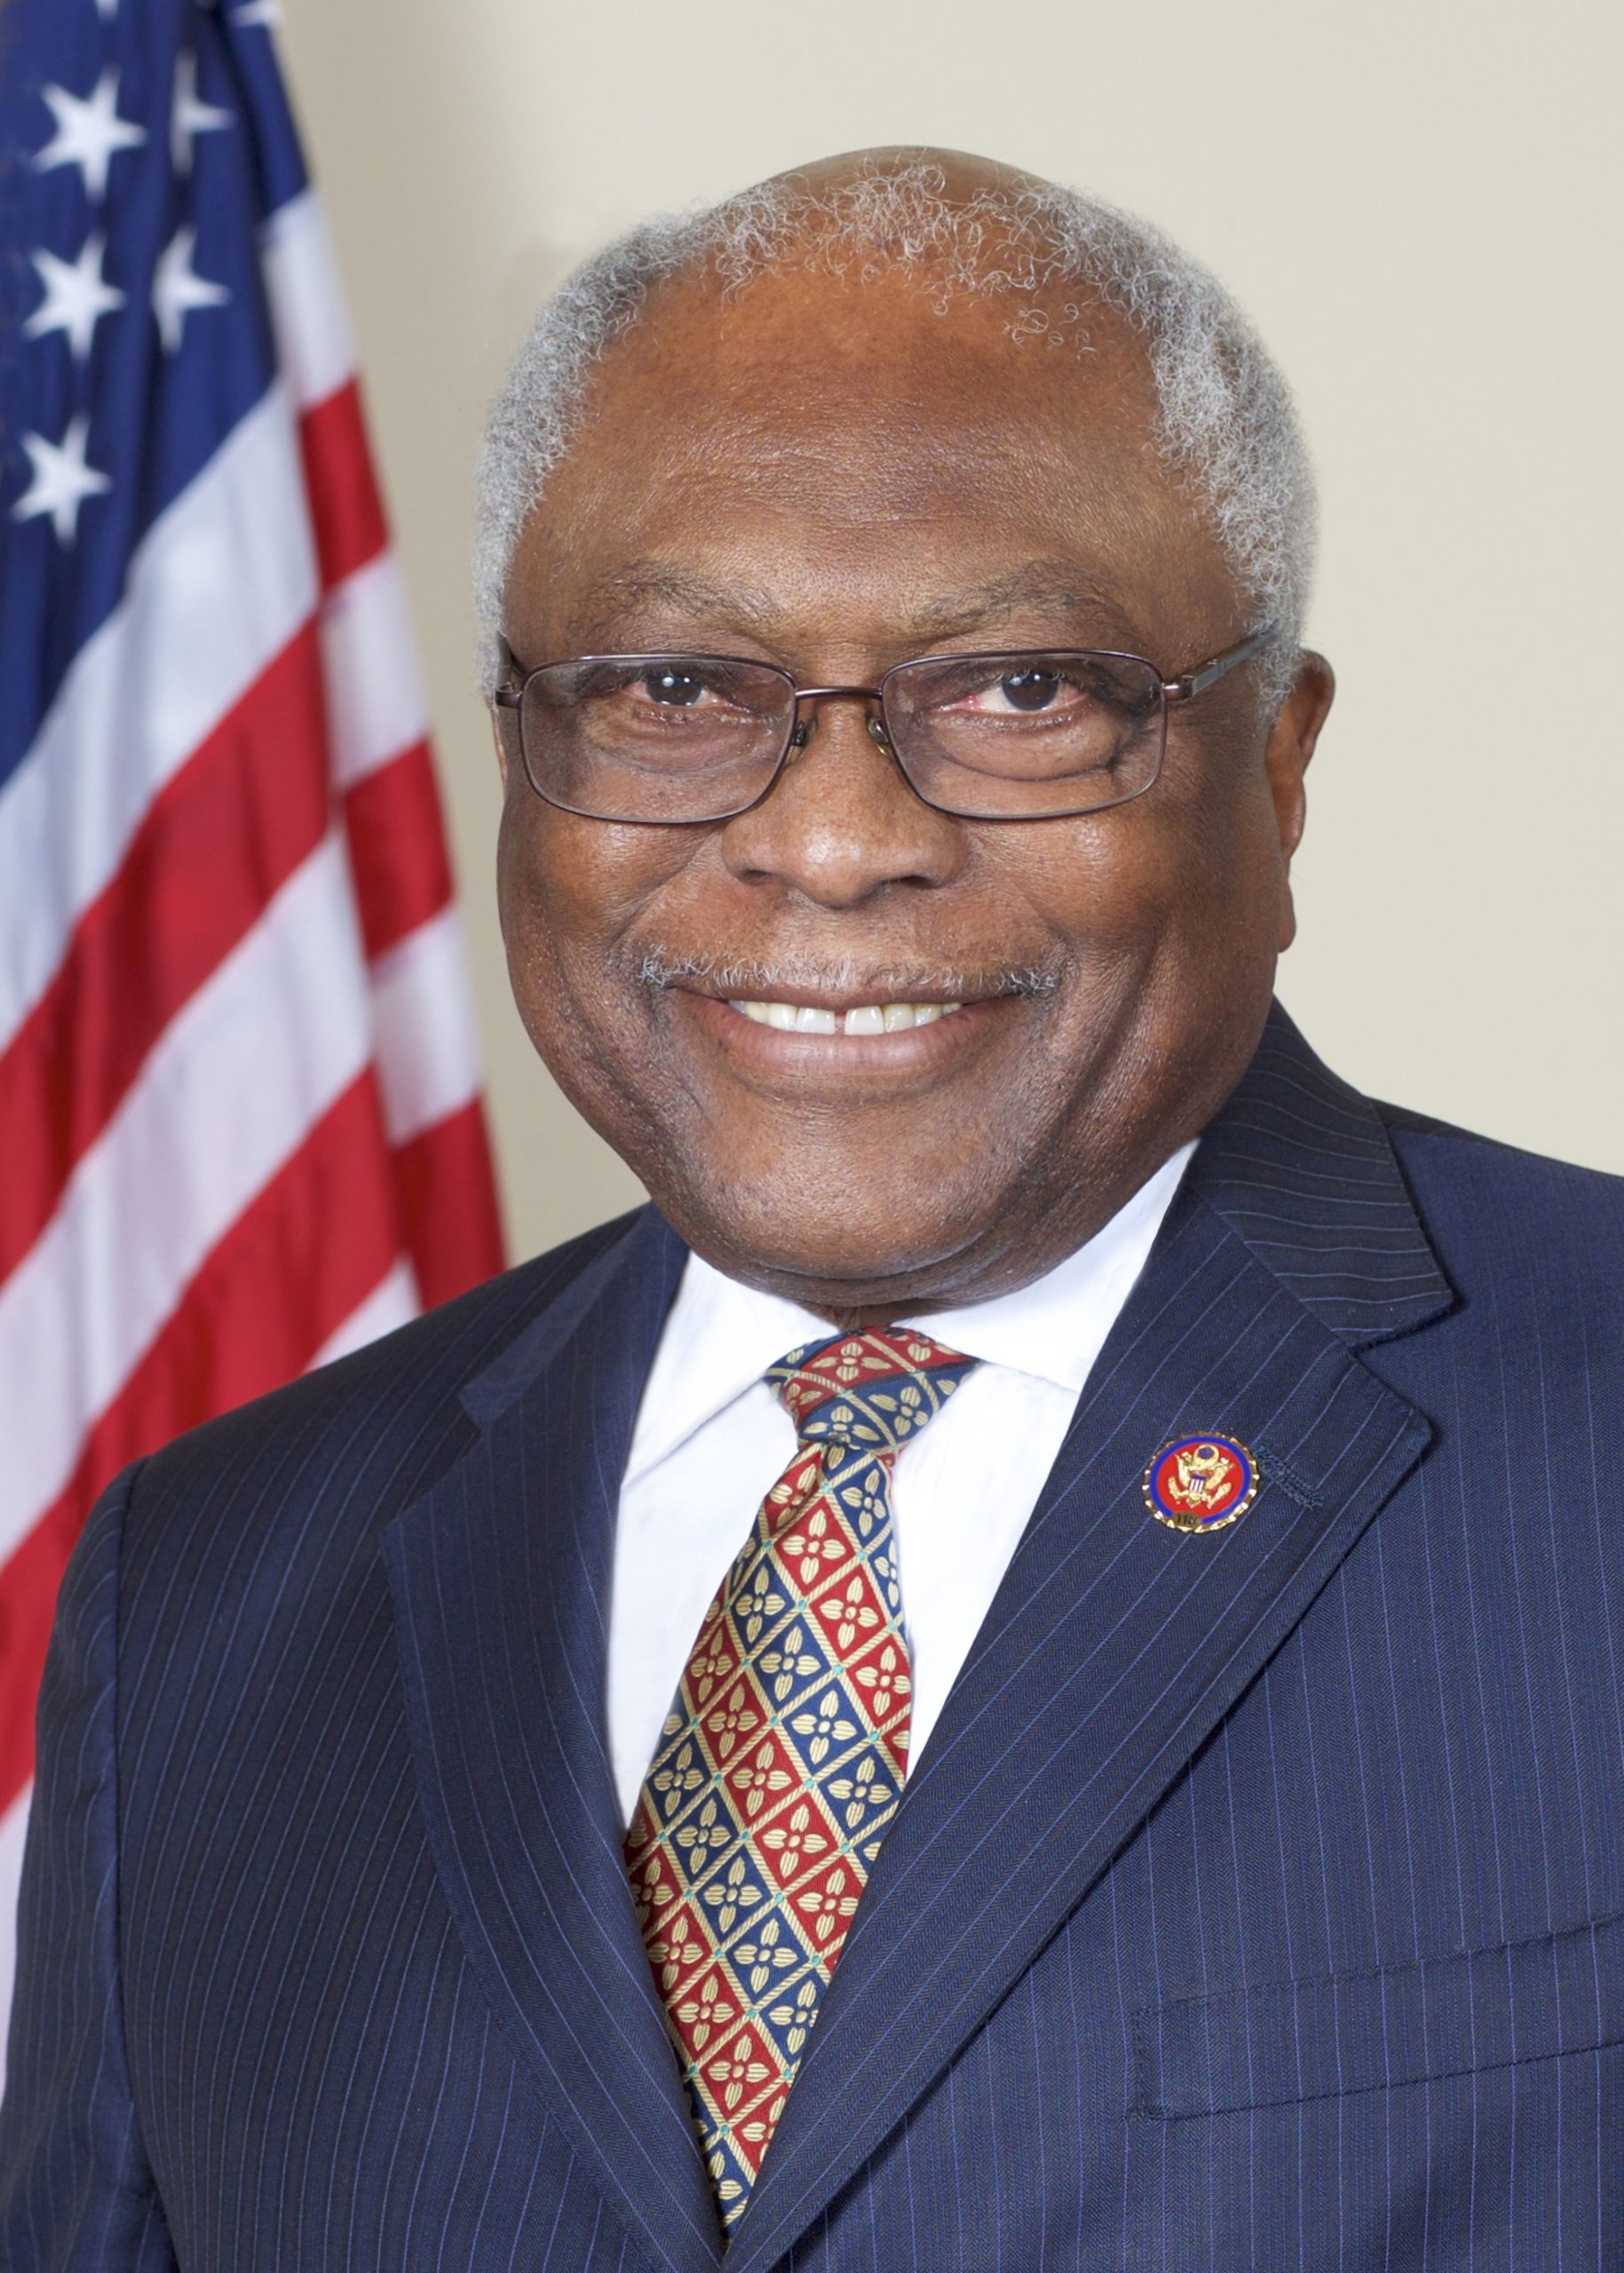 A portrait of Jim Clyburn in front of an American flag